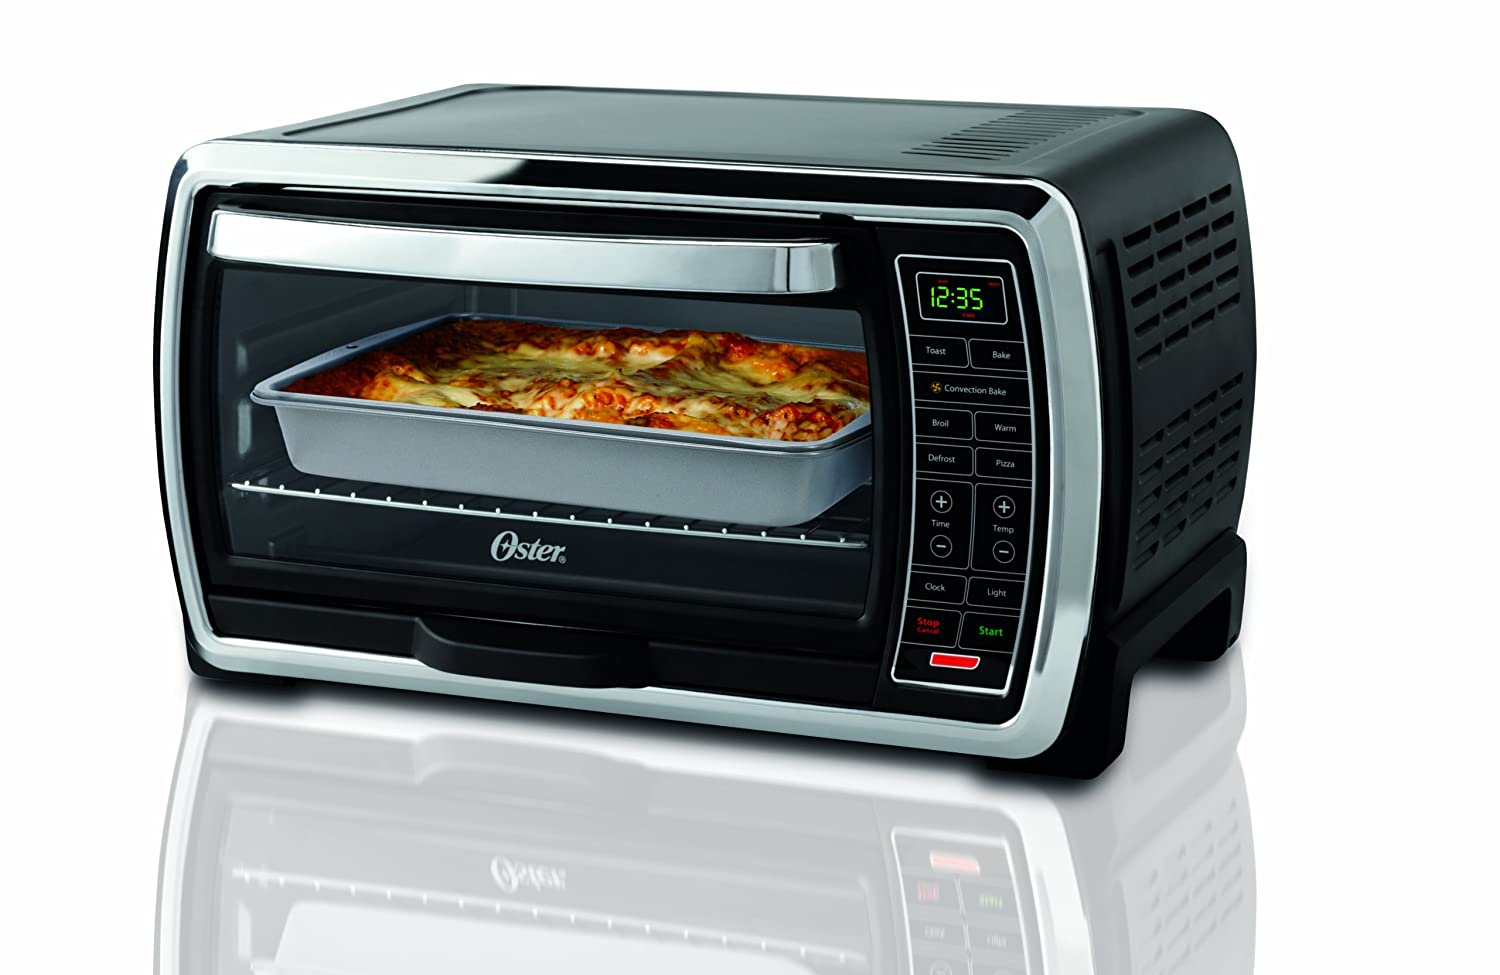 Toaster Ovens Oster Digital Large Capacity Black Cooking Grill Chicken ...